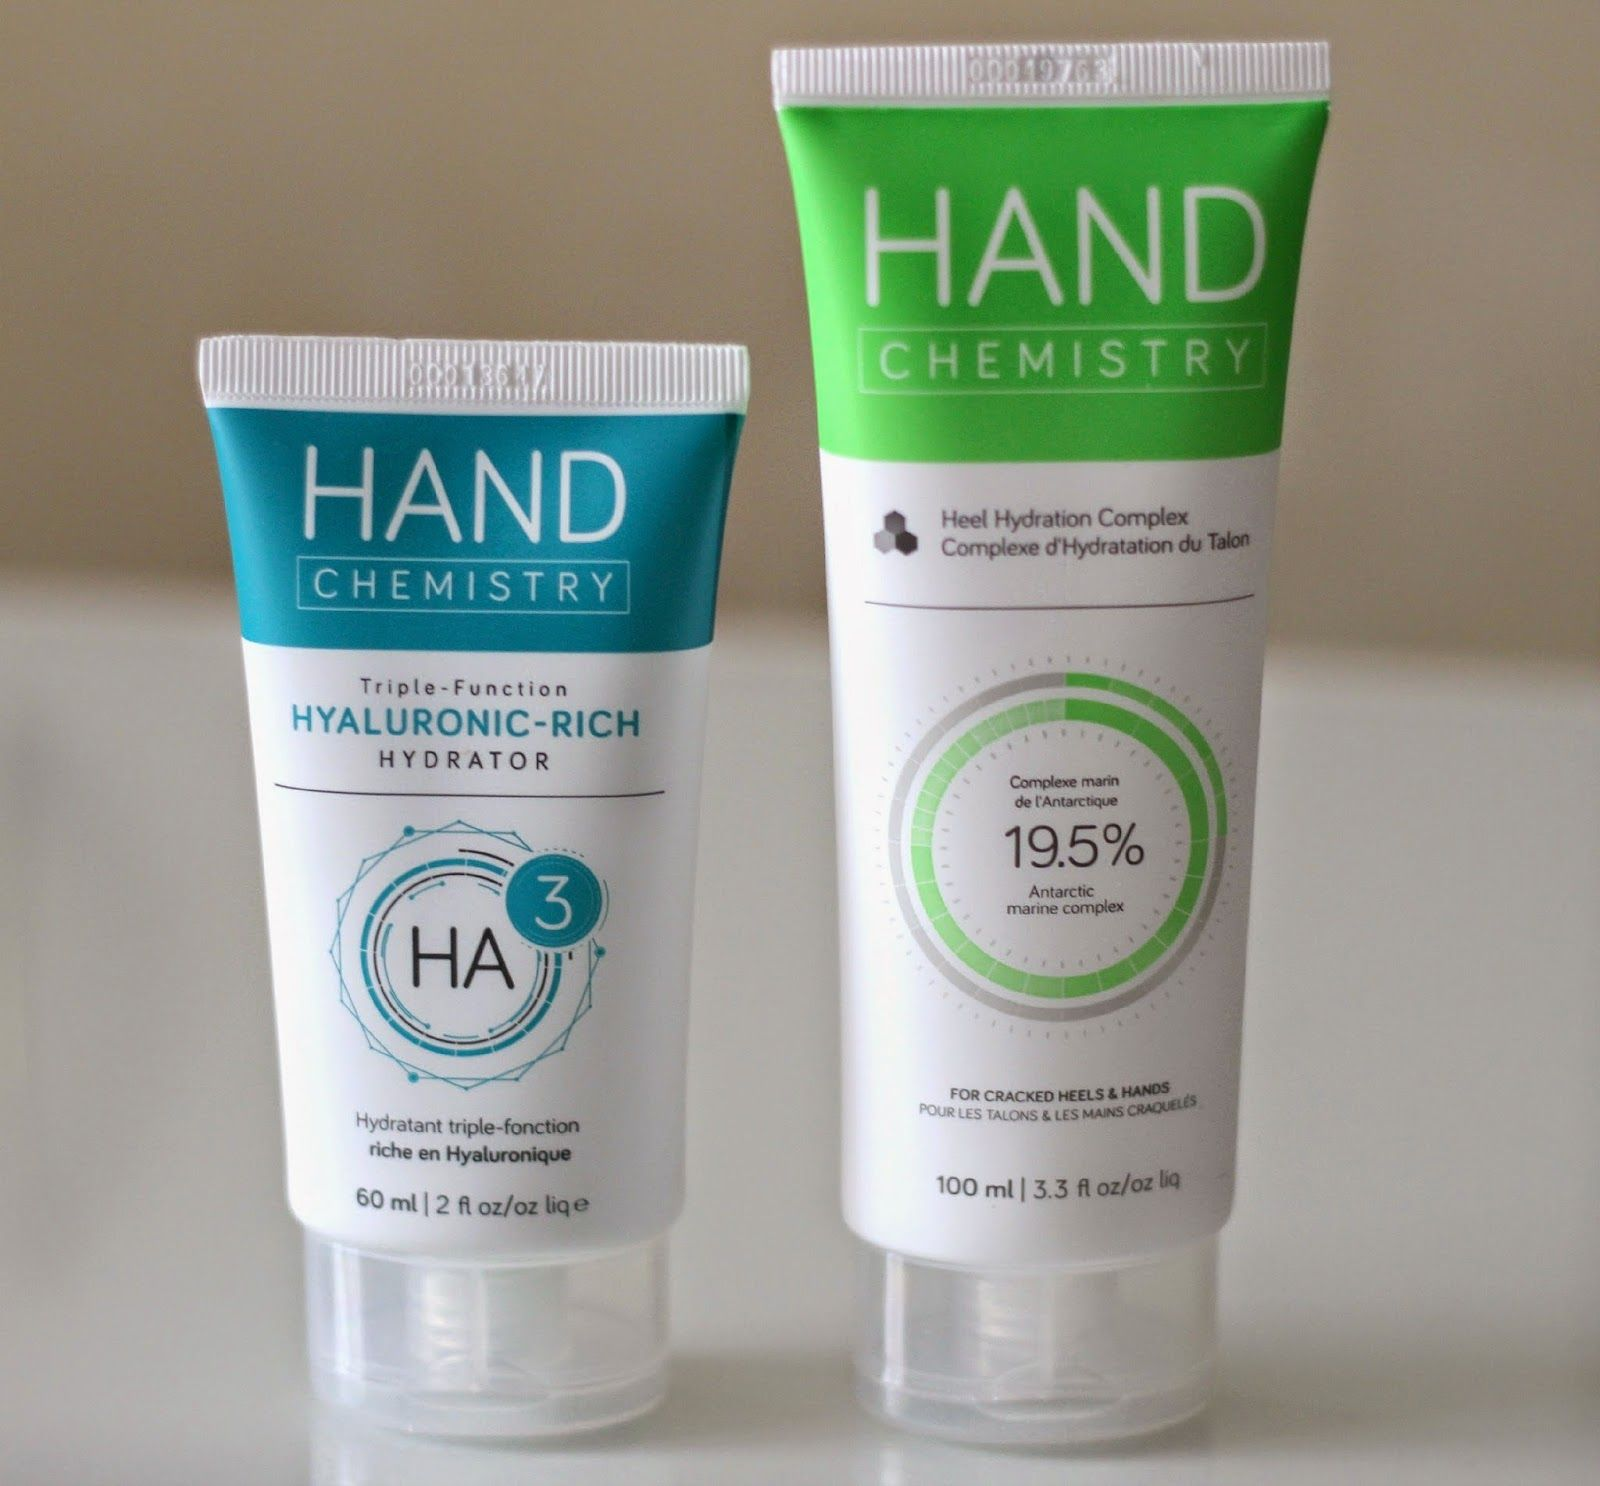 Natalie Loves Beauty: Hand Chemistry Triple-Function Hyaluronic-Rich Hydrator and Heel Hydration Complex | Review